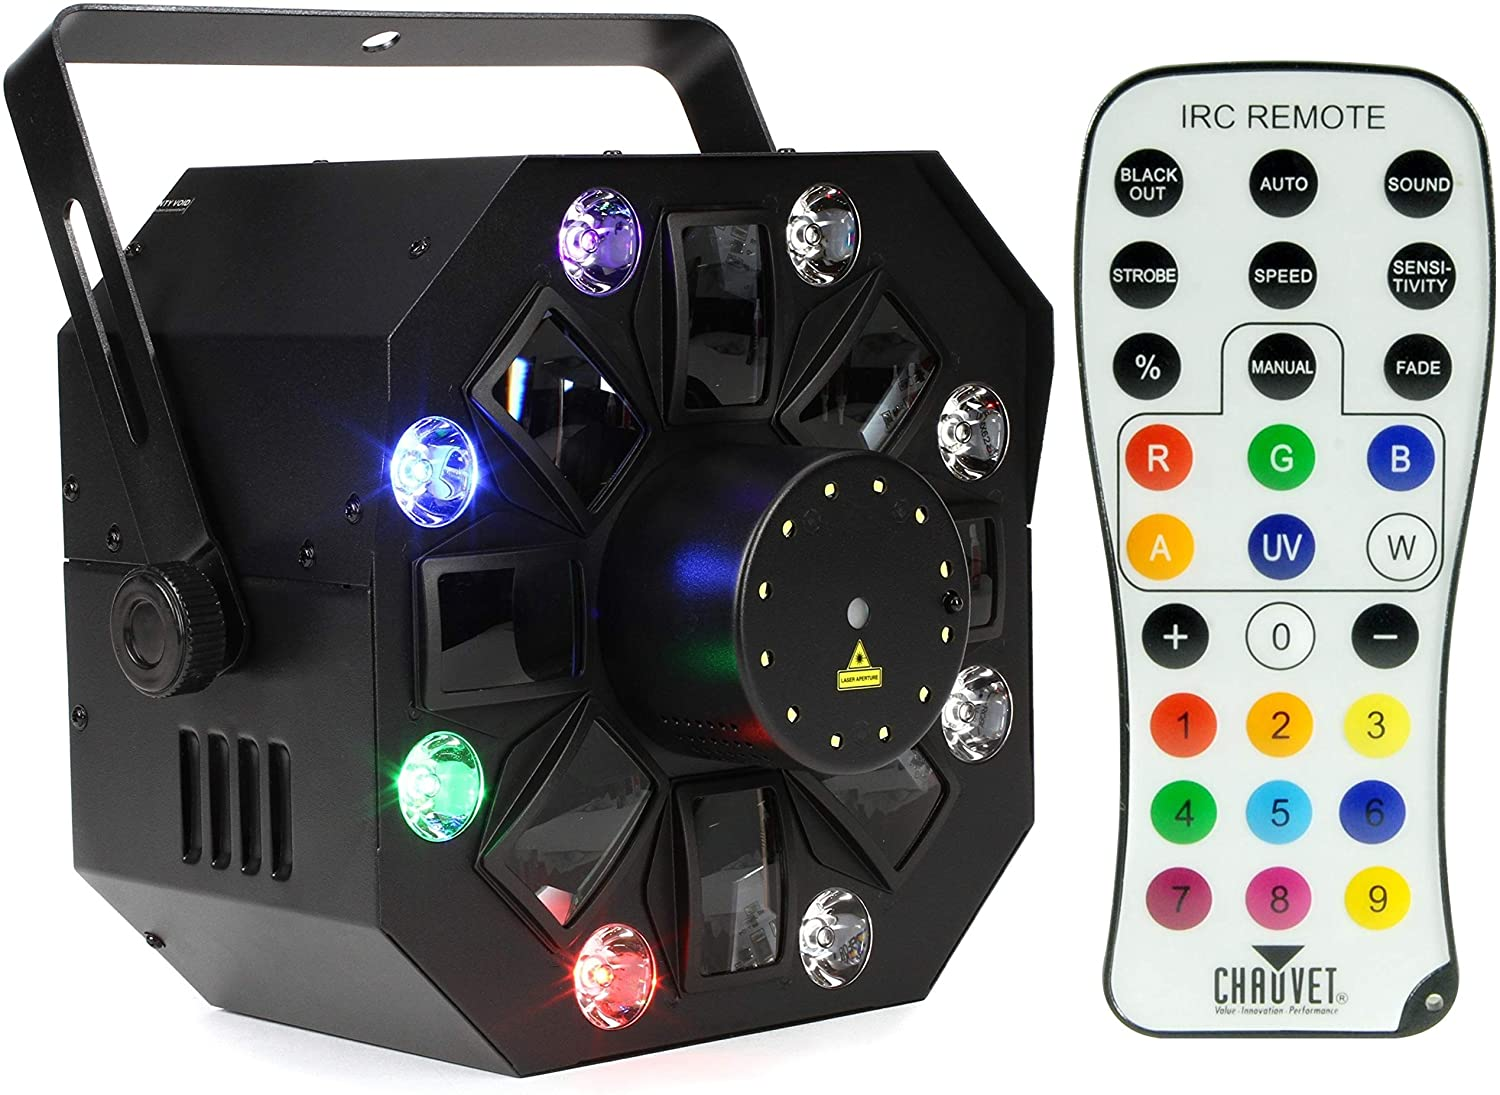 Chauvet DJ IRC-6 Infrared Remote Control + Chauvet DJ Swarm Wash FX 4-in-1 Derby/Wash/Laser/Strobe Effect Value Bundle